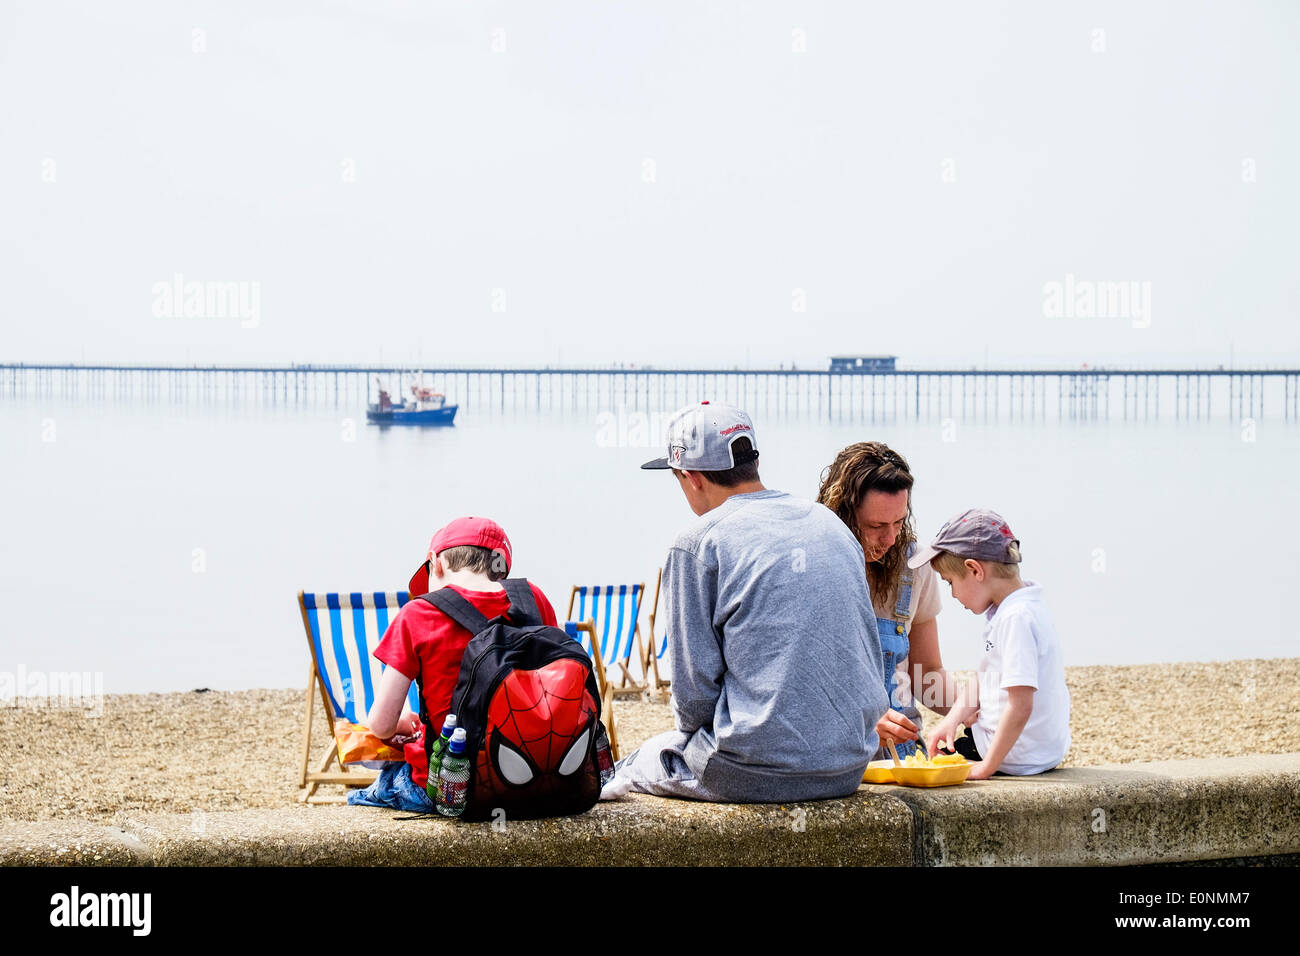 Southend on Sea, Essex, UK. 17th May, 2014.  A family eating fish and chips on Southend seafront on what is proving to be the hottest day of the year so far.  Photographer: Gordon Scammell/Alamy Live News - Stock Image